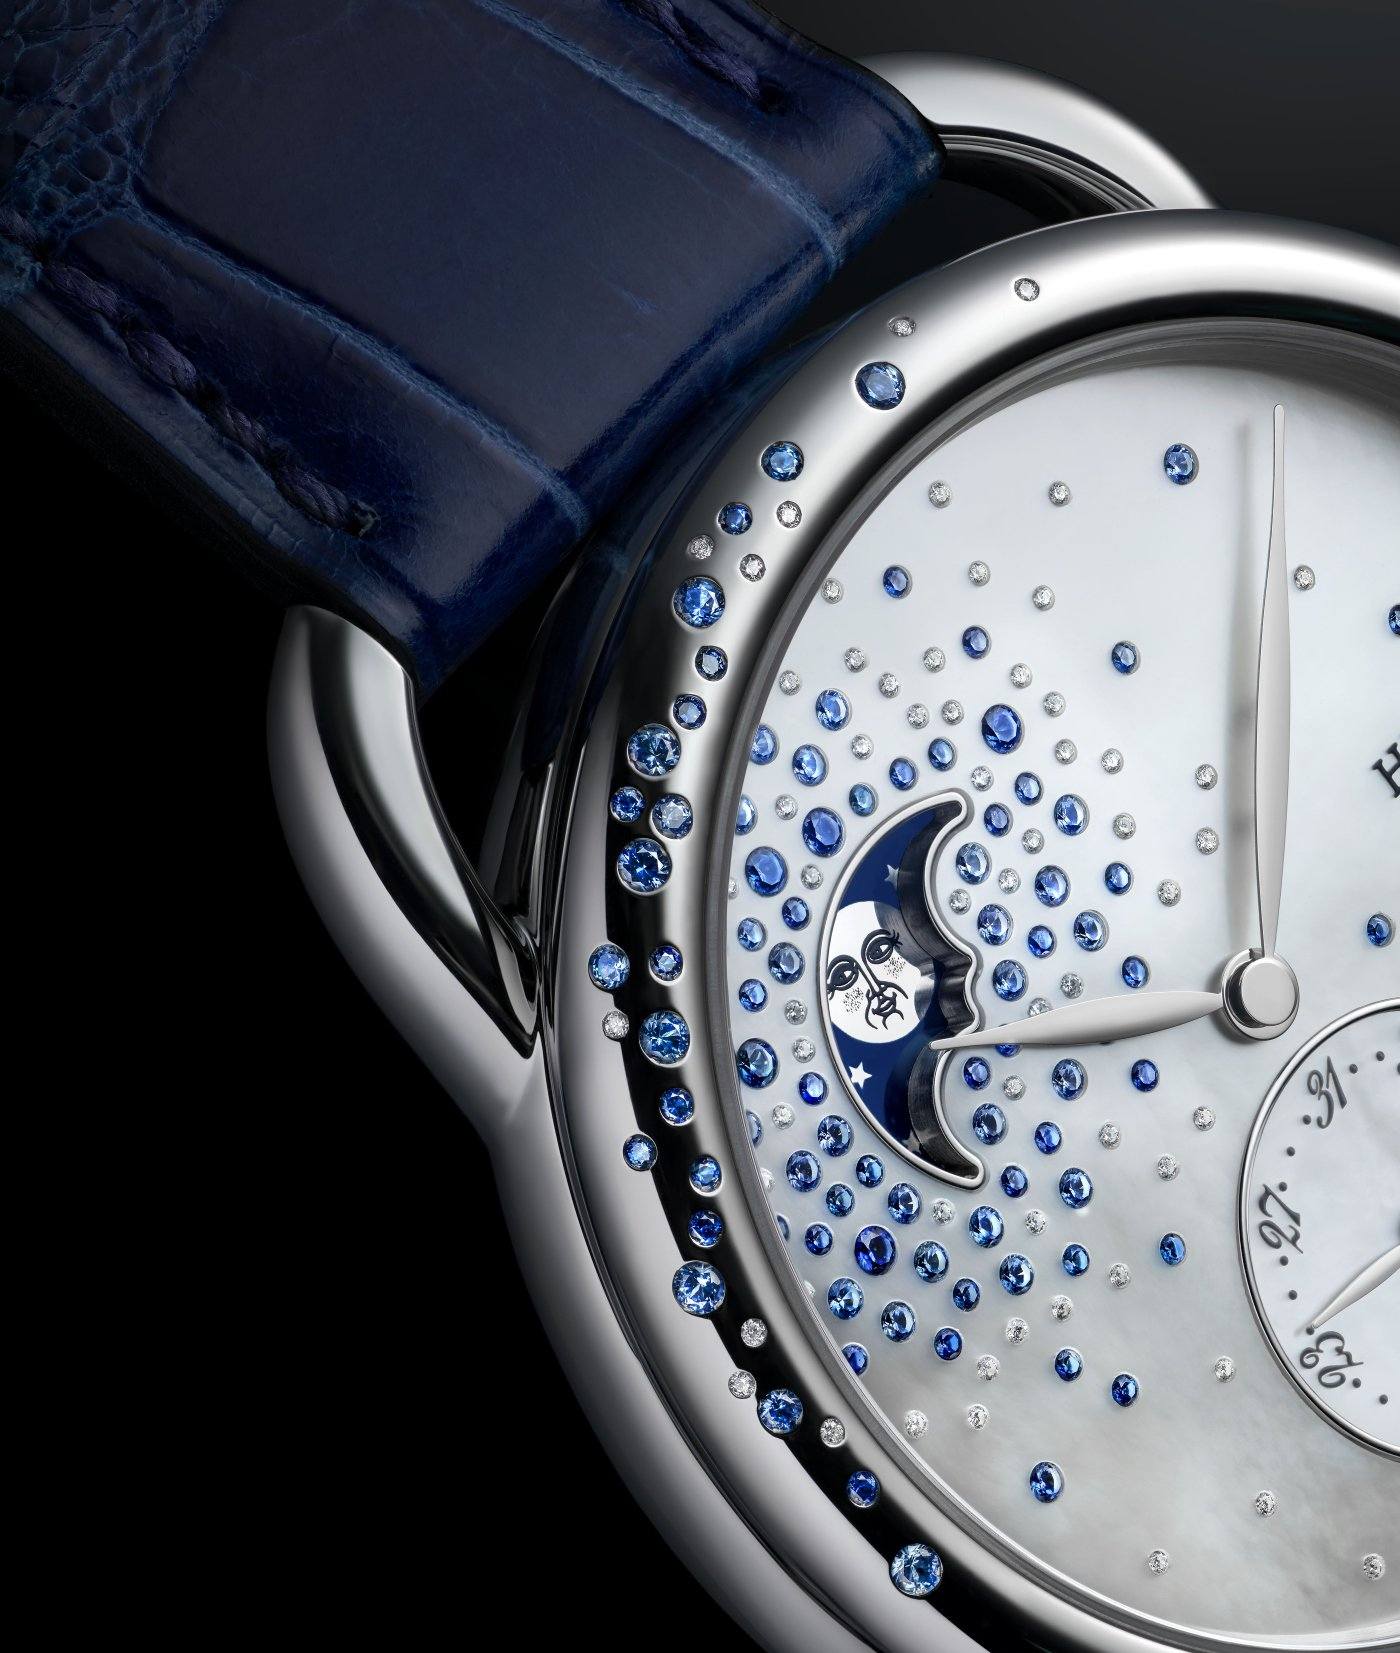 Hermes_arceau_petite_lune_jete_de_diamants_et_saphirs_close_-_europa_star_watch_magazine_2020